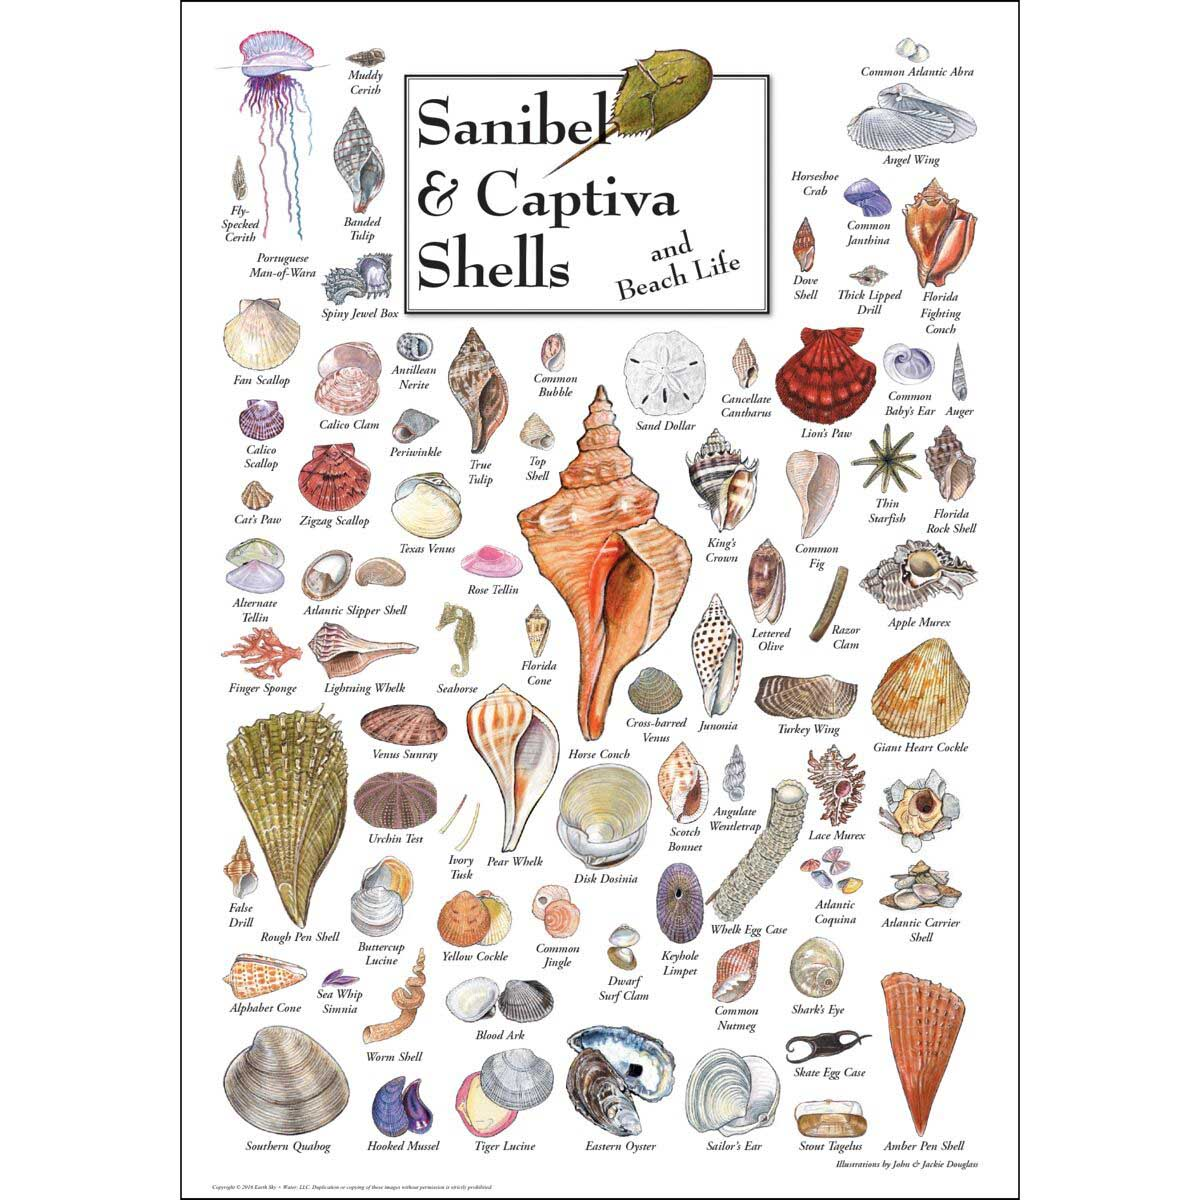 Shells of Sanibel & Captiva Under The Sea Jigsaw Puzzle